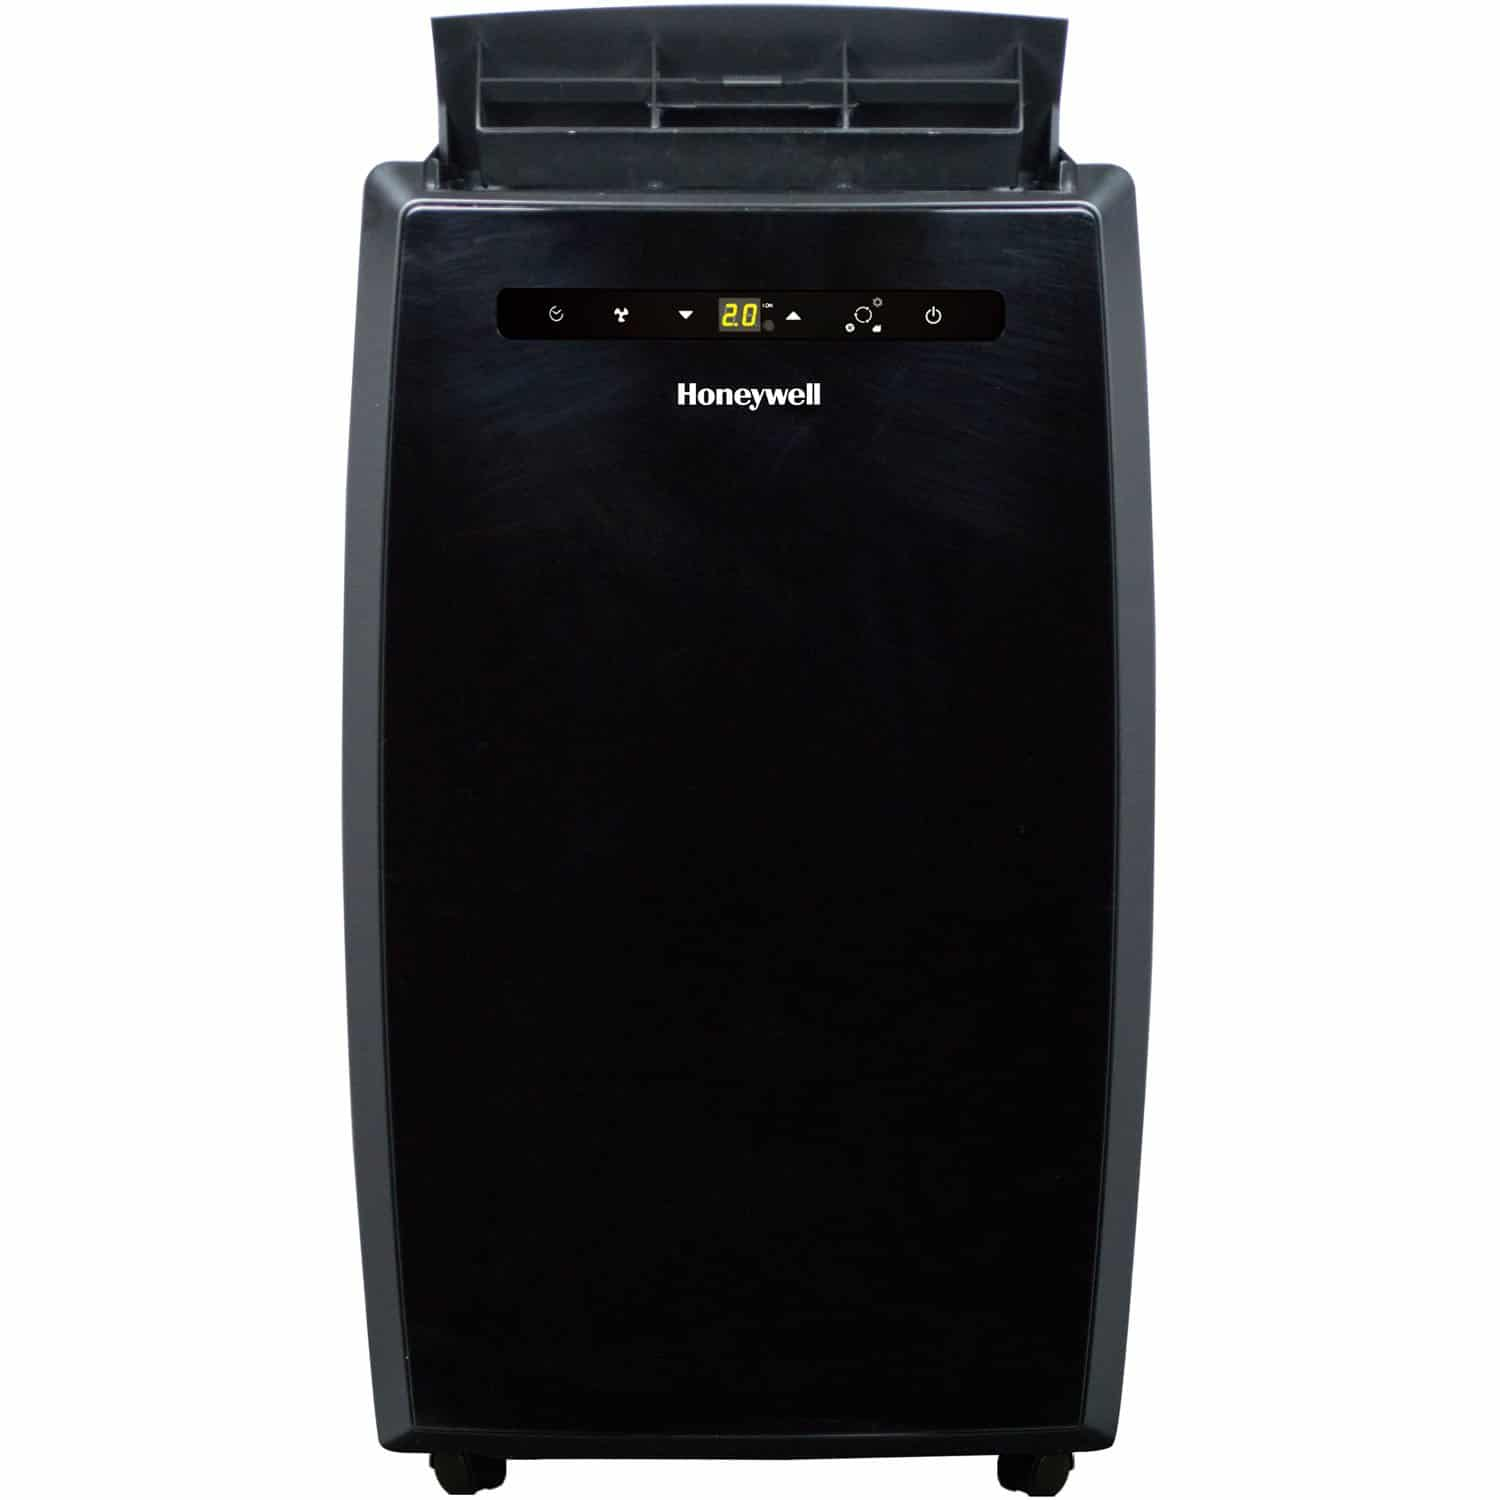 Honeywell MN10CESBB Portable Air Conditioner with Dehumidifier & Fan